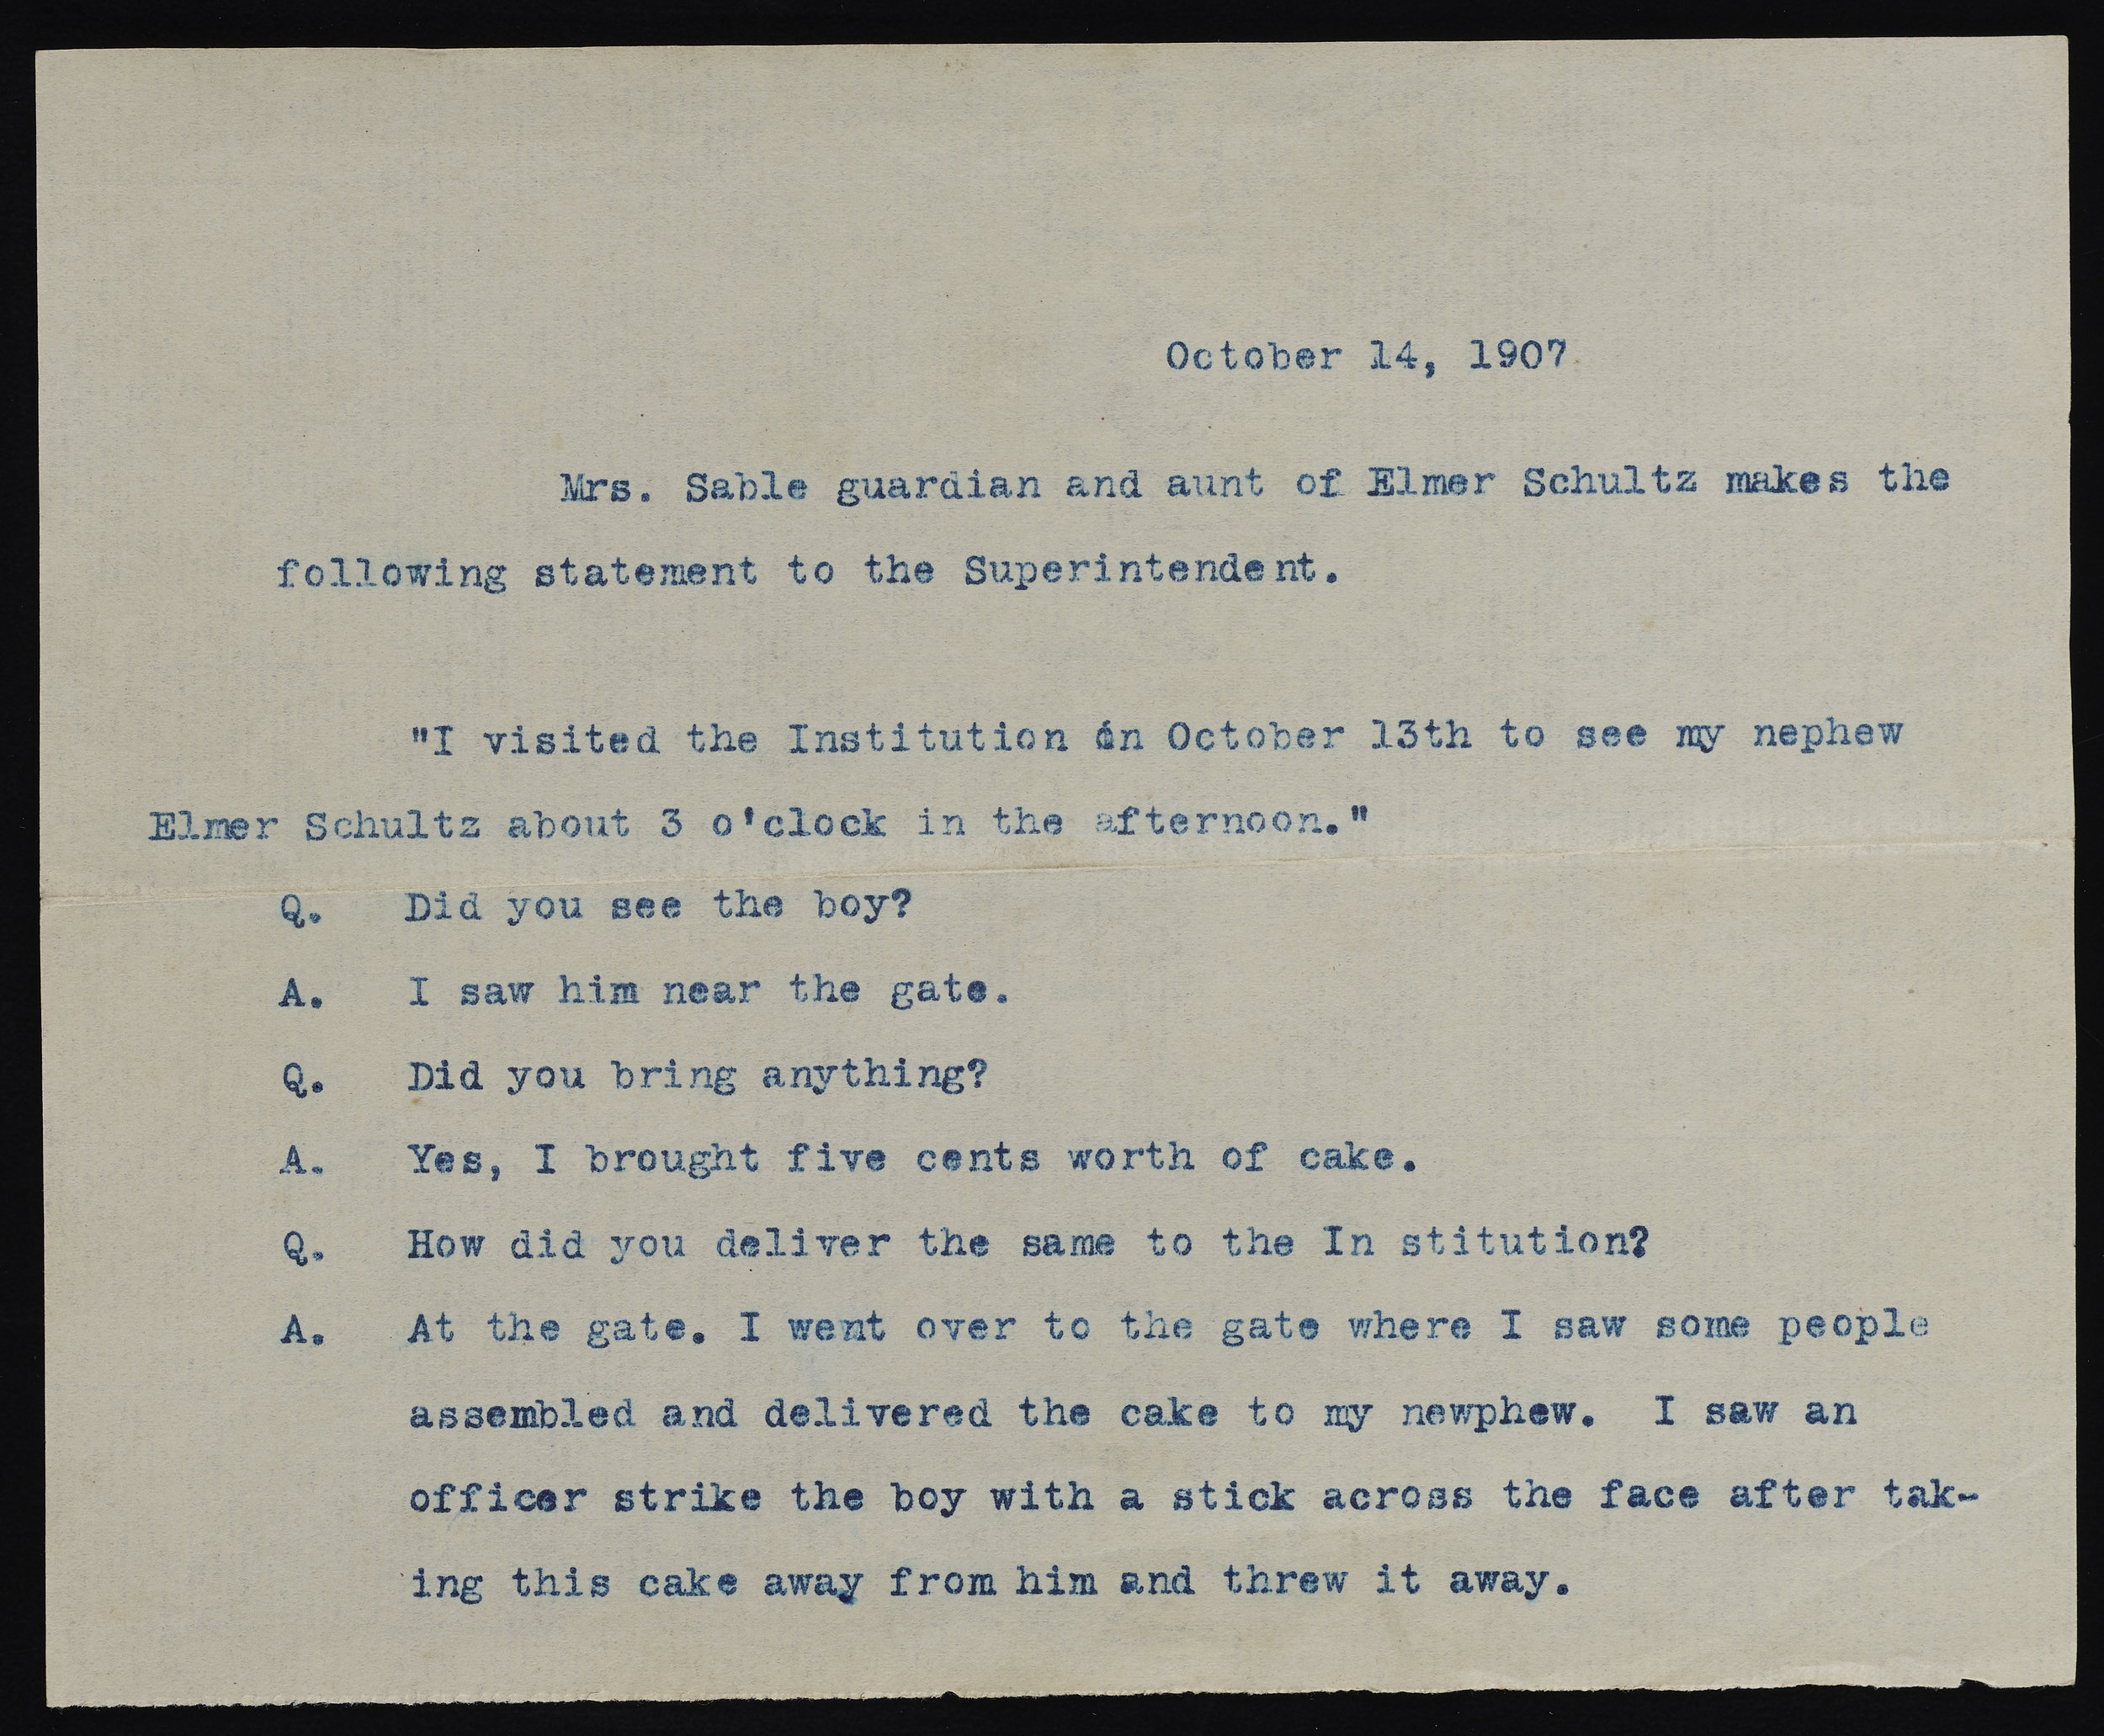 Transcript of an interview reporting corporal punishment at the school, 1907. Records of the Brooklyn Disciplinary Training School for Boys, NYC Municipal Archives.